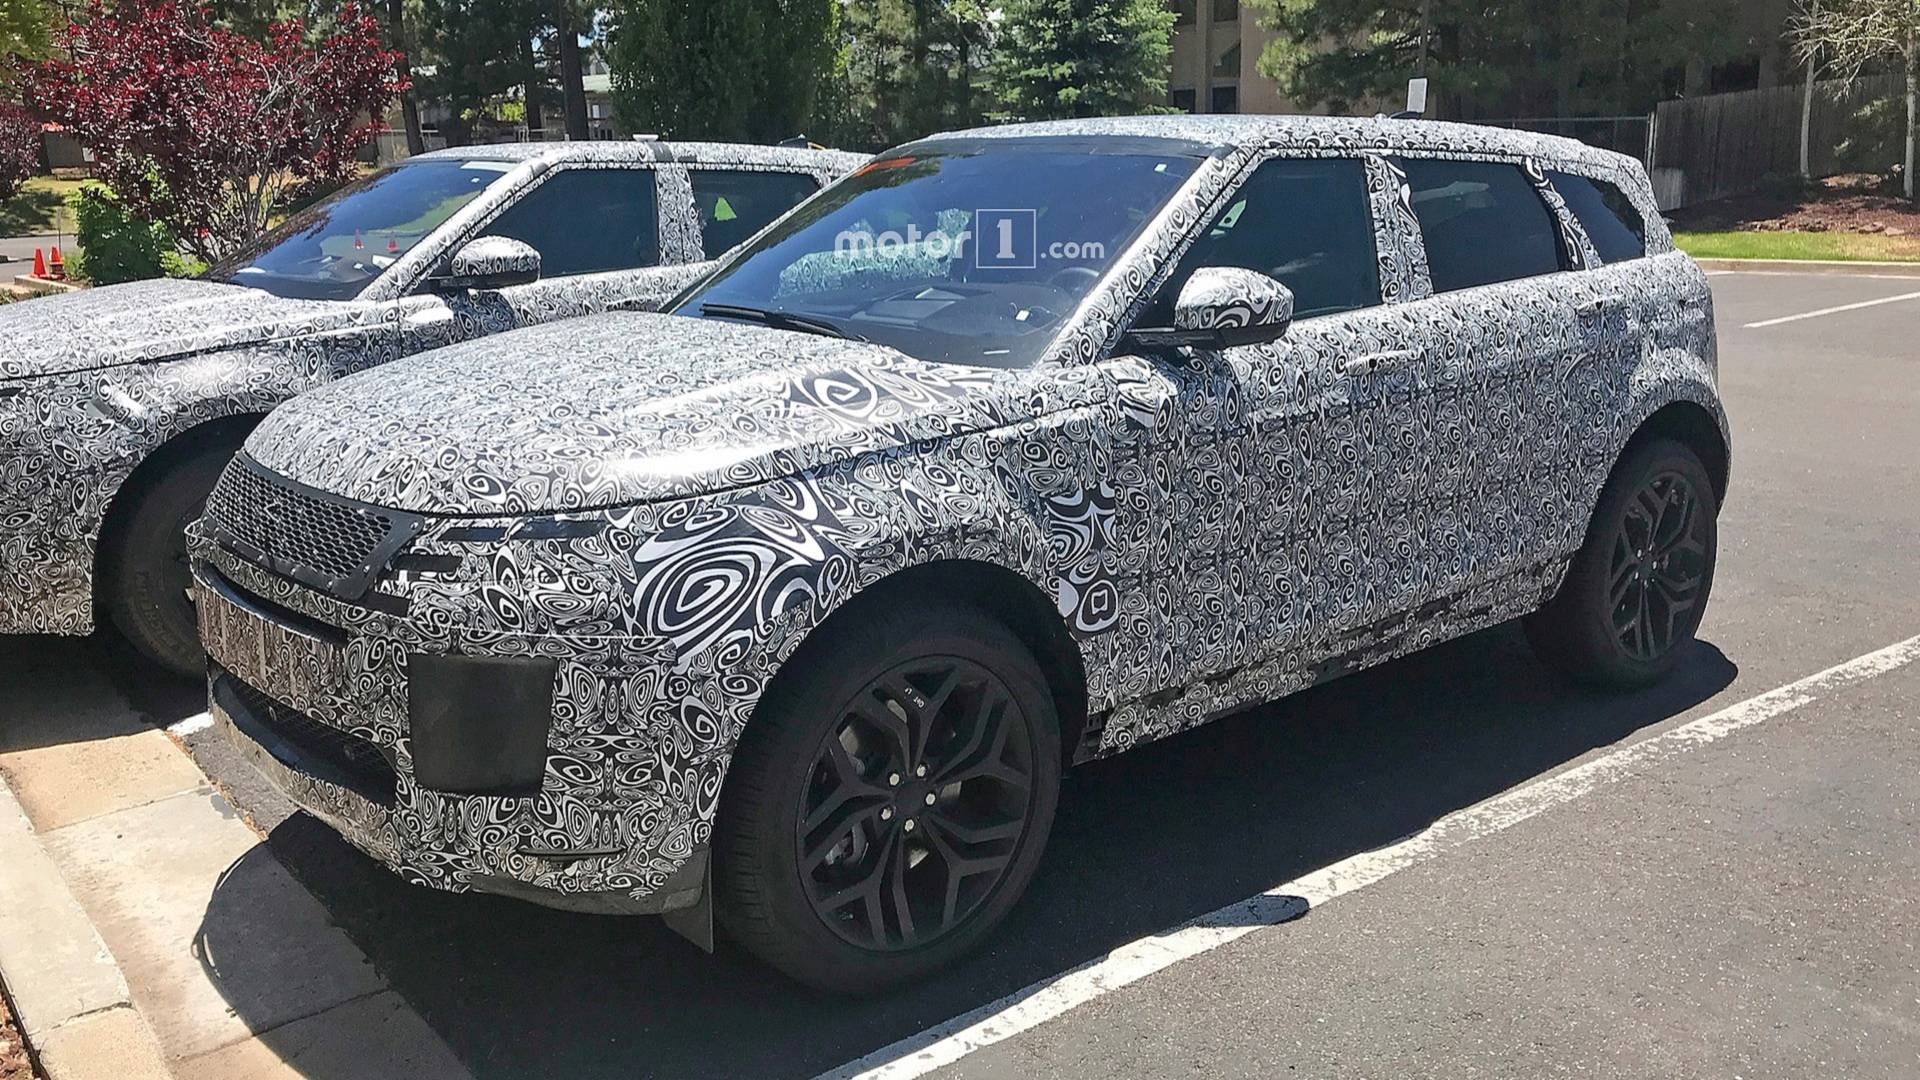 Range Rover Interior >> New Range Rover Evoque Flaunts Its Tech Focused Cabin In Spy Shots